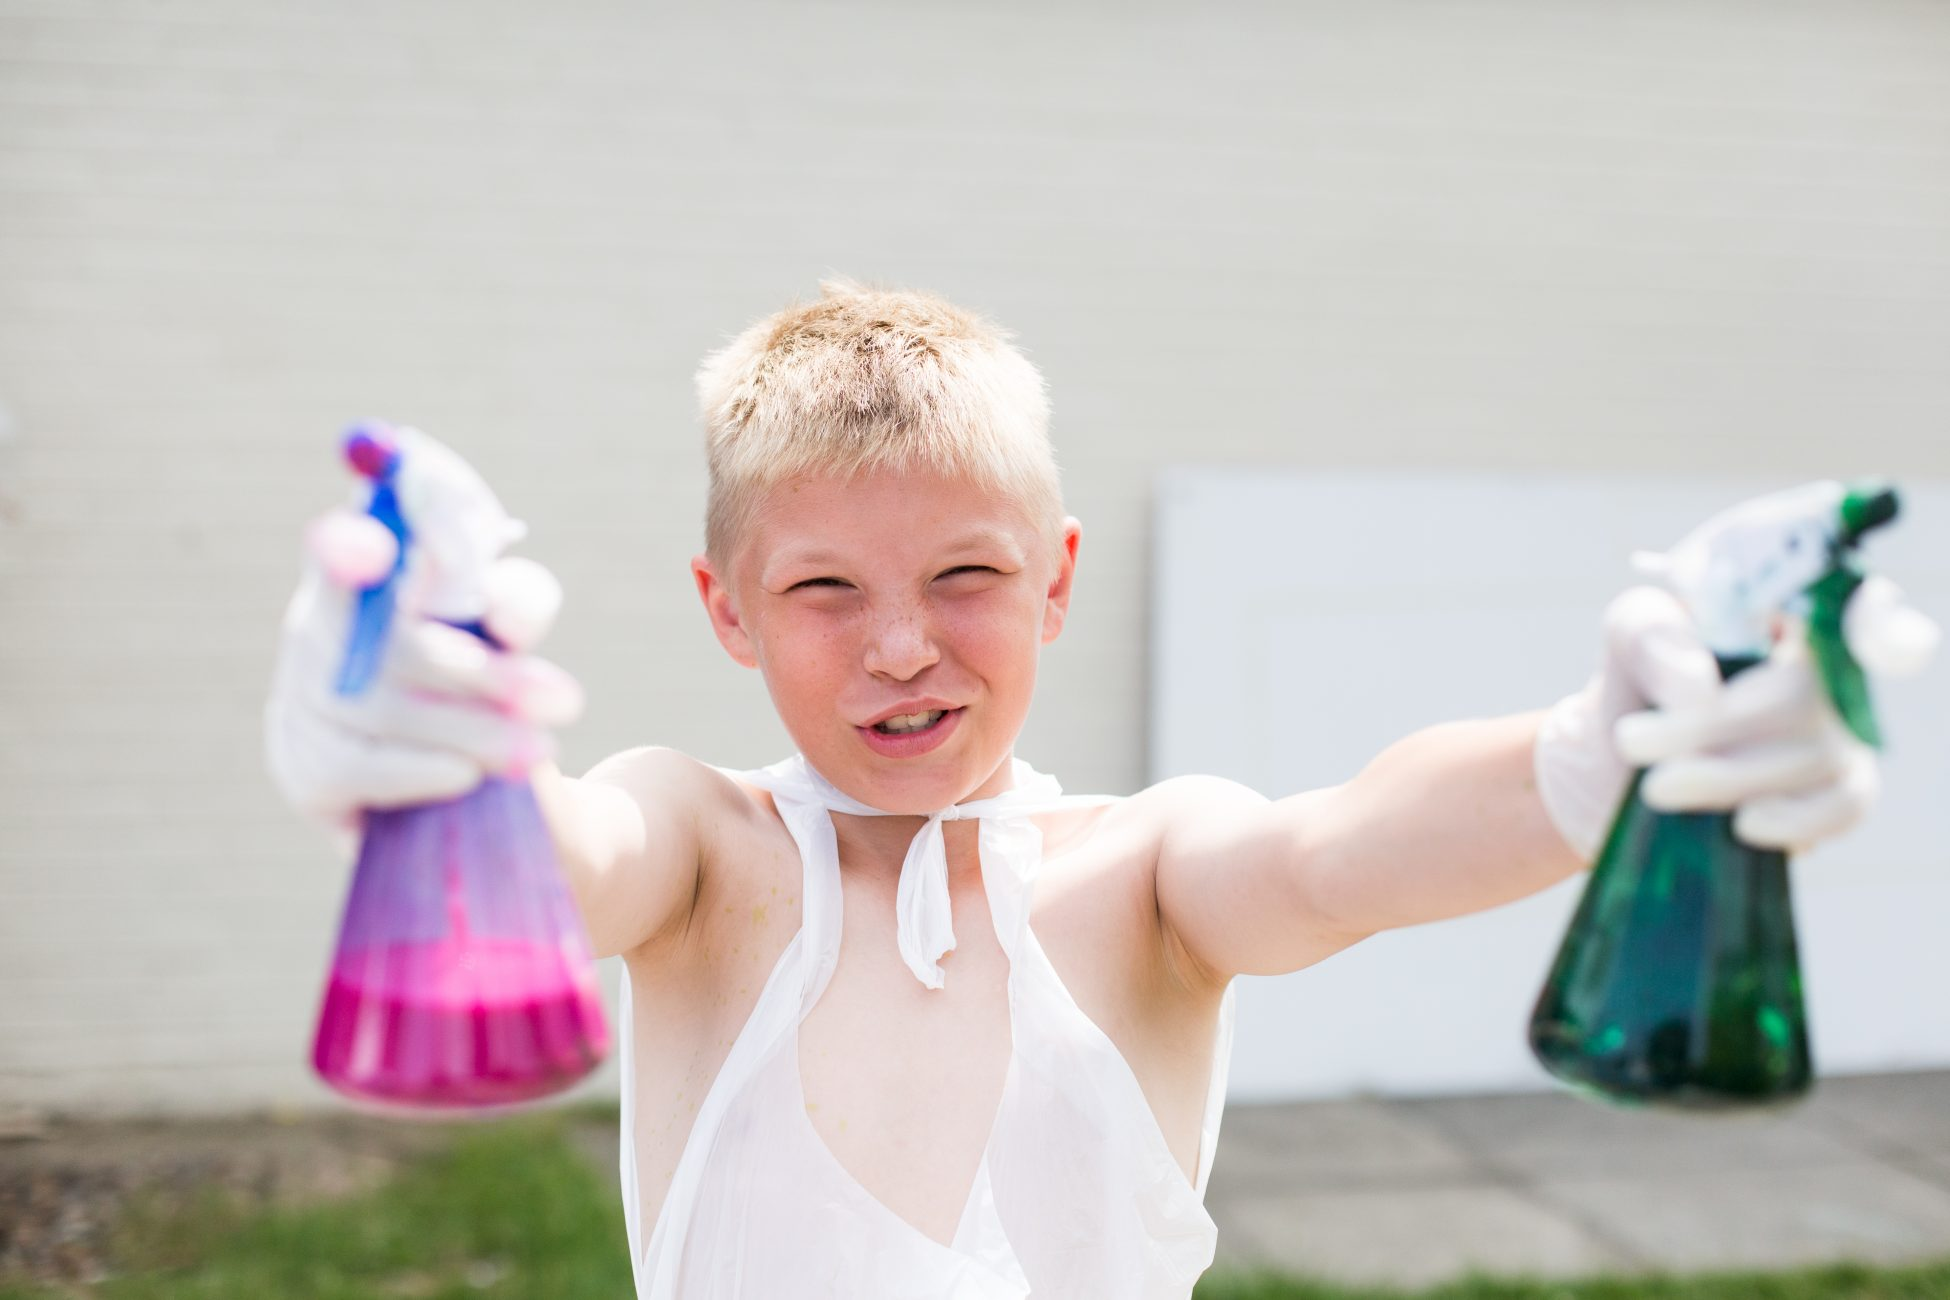 Photo of a child wearing a plastic apron and rubber gloves holding 2 spray bottles full of paint/dye up to the camera